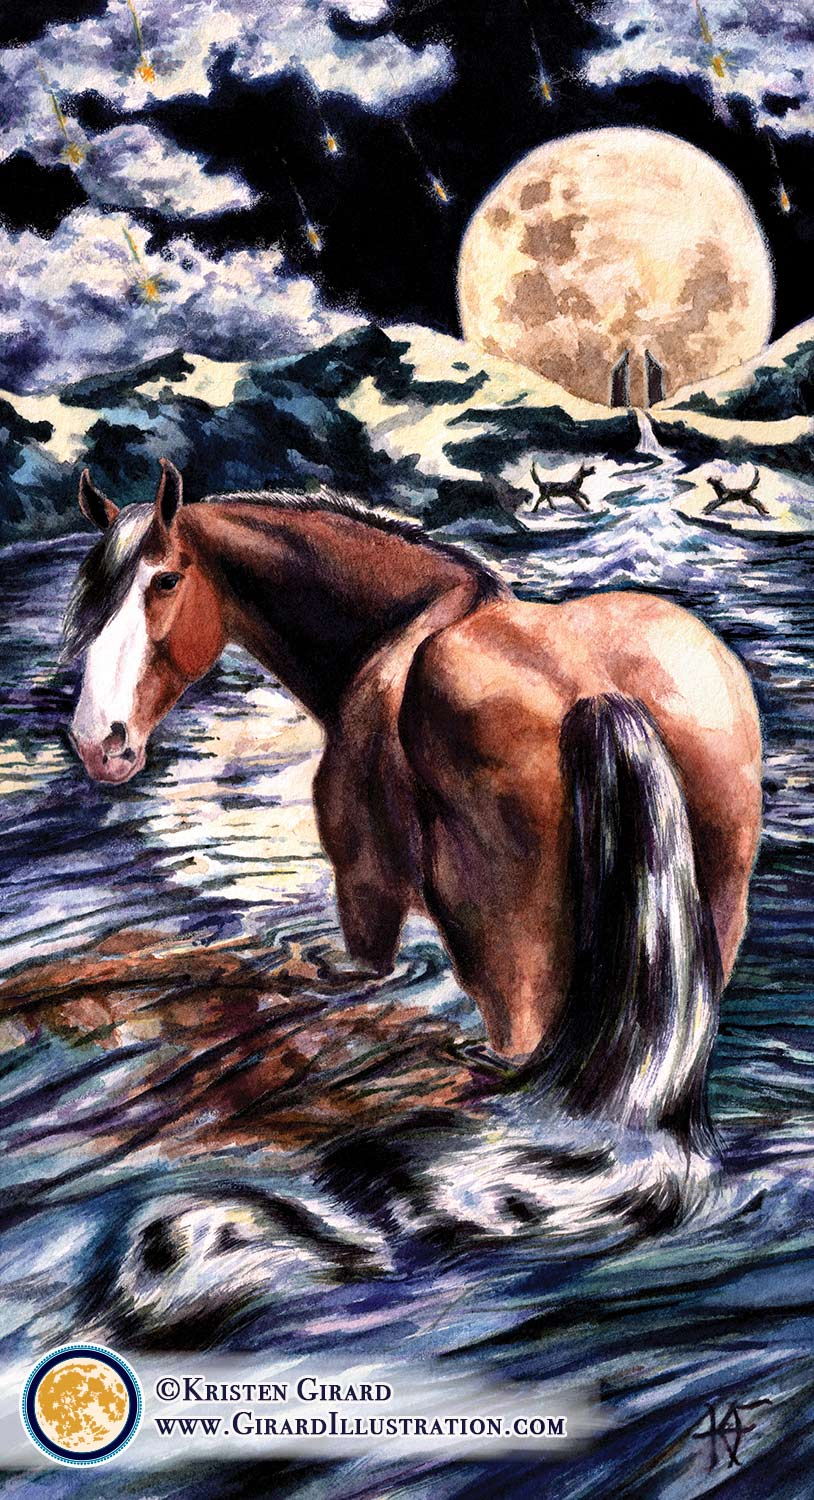 A Clydesdale draft horse wades into lake waters underneath the full moon. His tail blends with the water. The a river flows into the lake. The moon rises in the dark of night above mountains on the shore. Two dogs and two towers are on the shore of the rippling lake waters beneath the moon.  The Moon © by Kristen Girard.